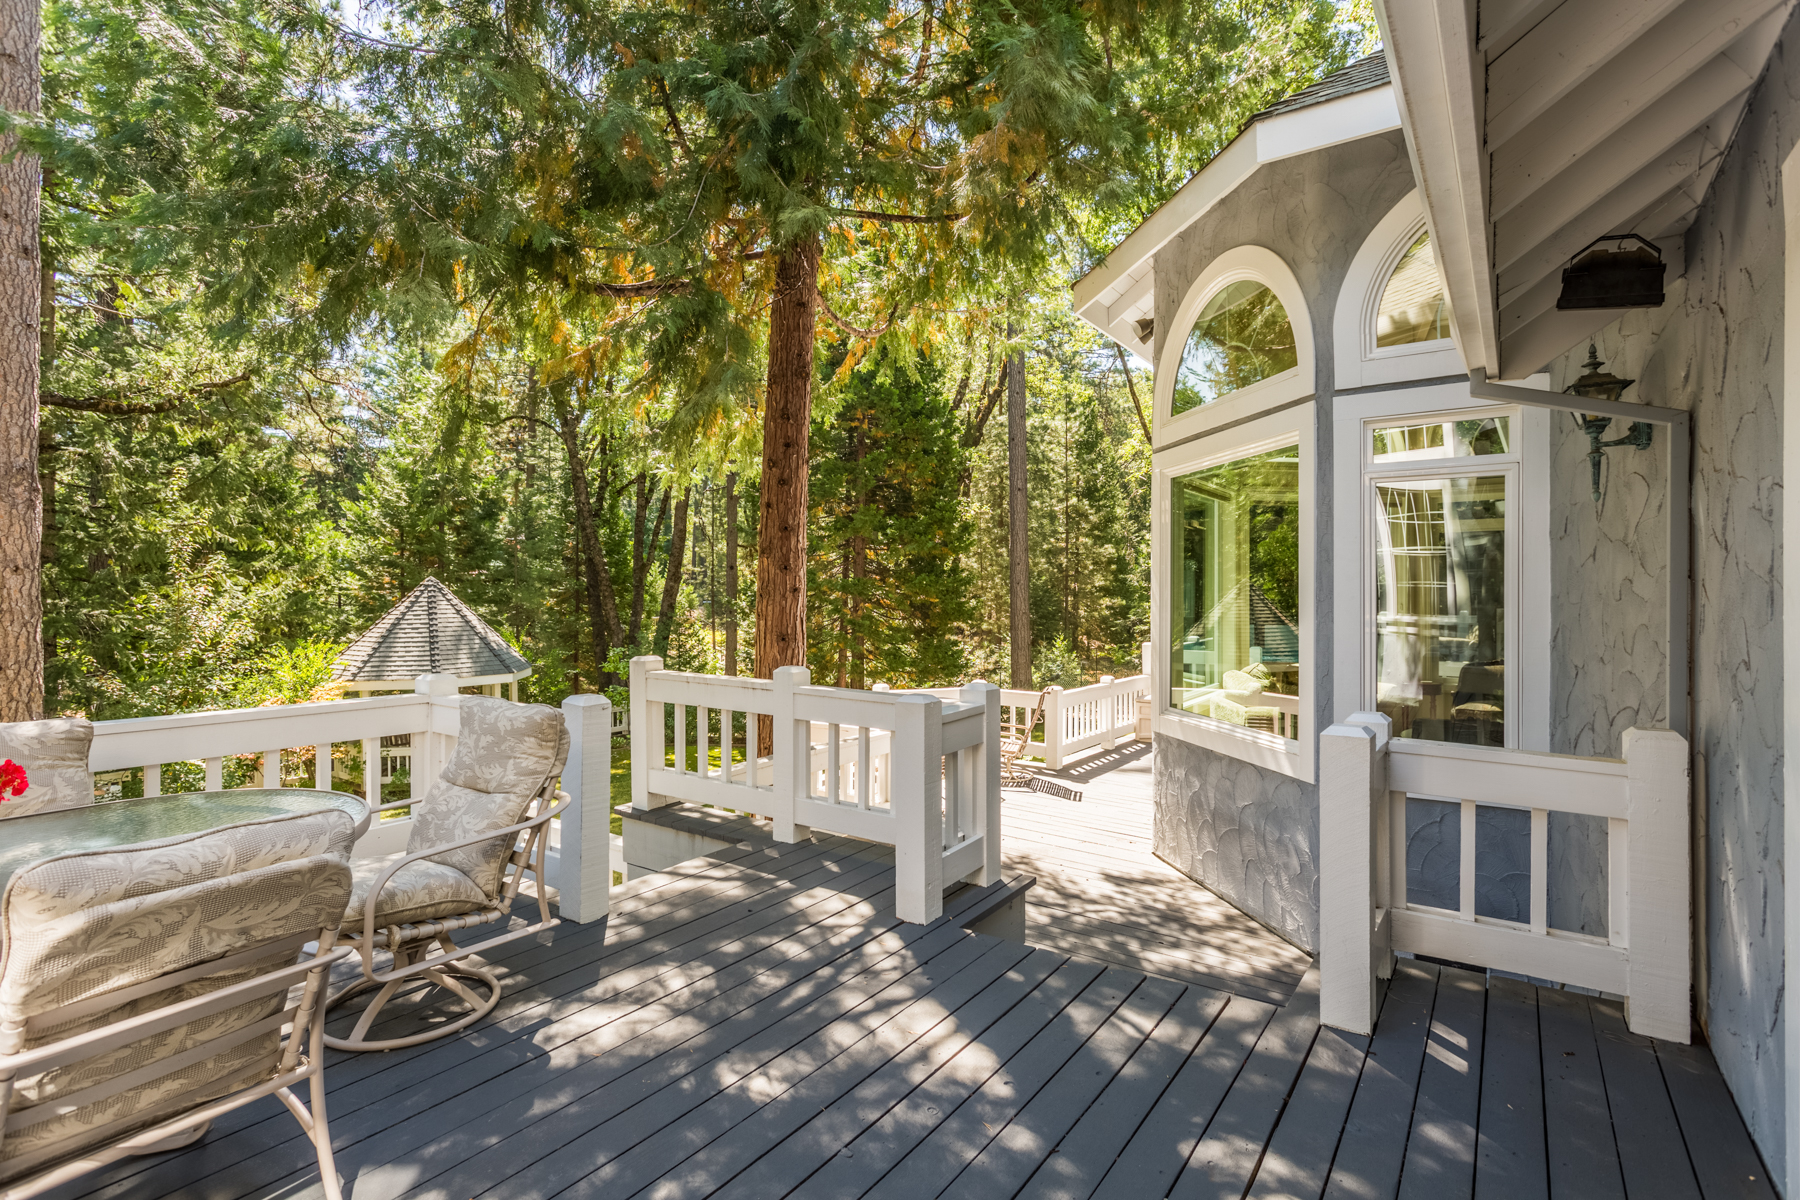 Additional photo for property listing at 11821Whisperwood Way, Nevada City, CA 11821 Whisperwood Way Nevada City, California 95959 United States